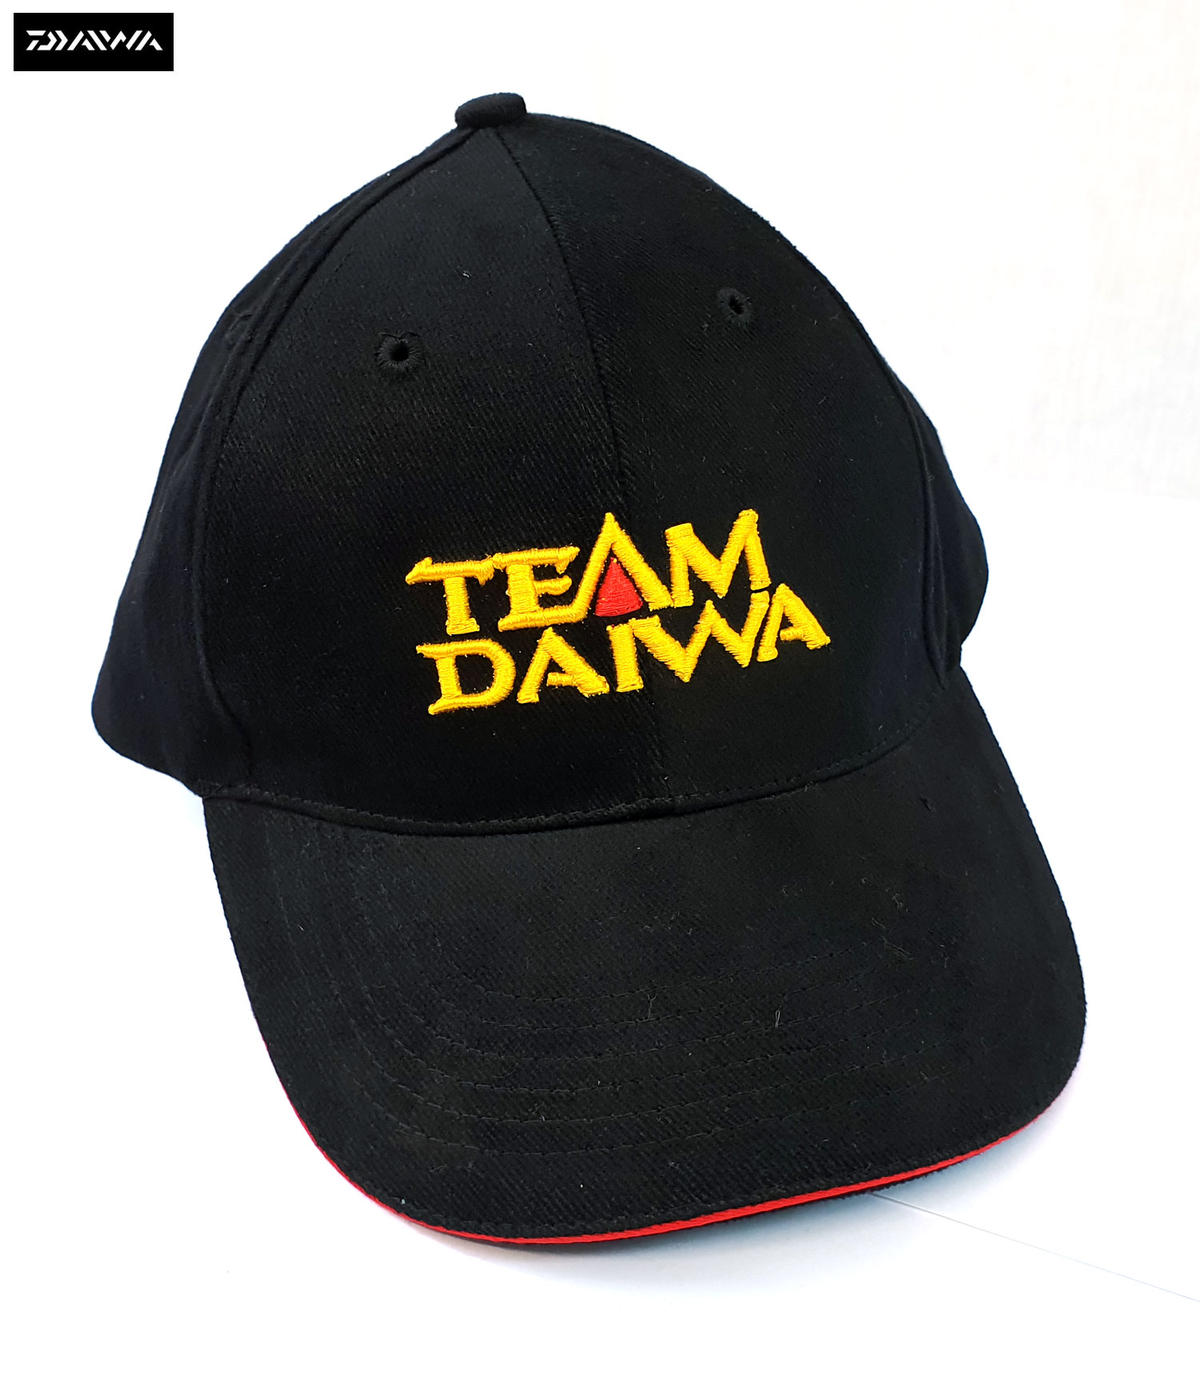 New Team Daiwa Logo Fishing Cap - Black - TDC